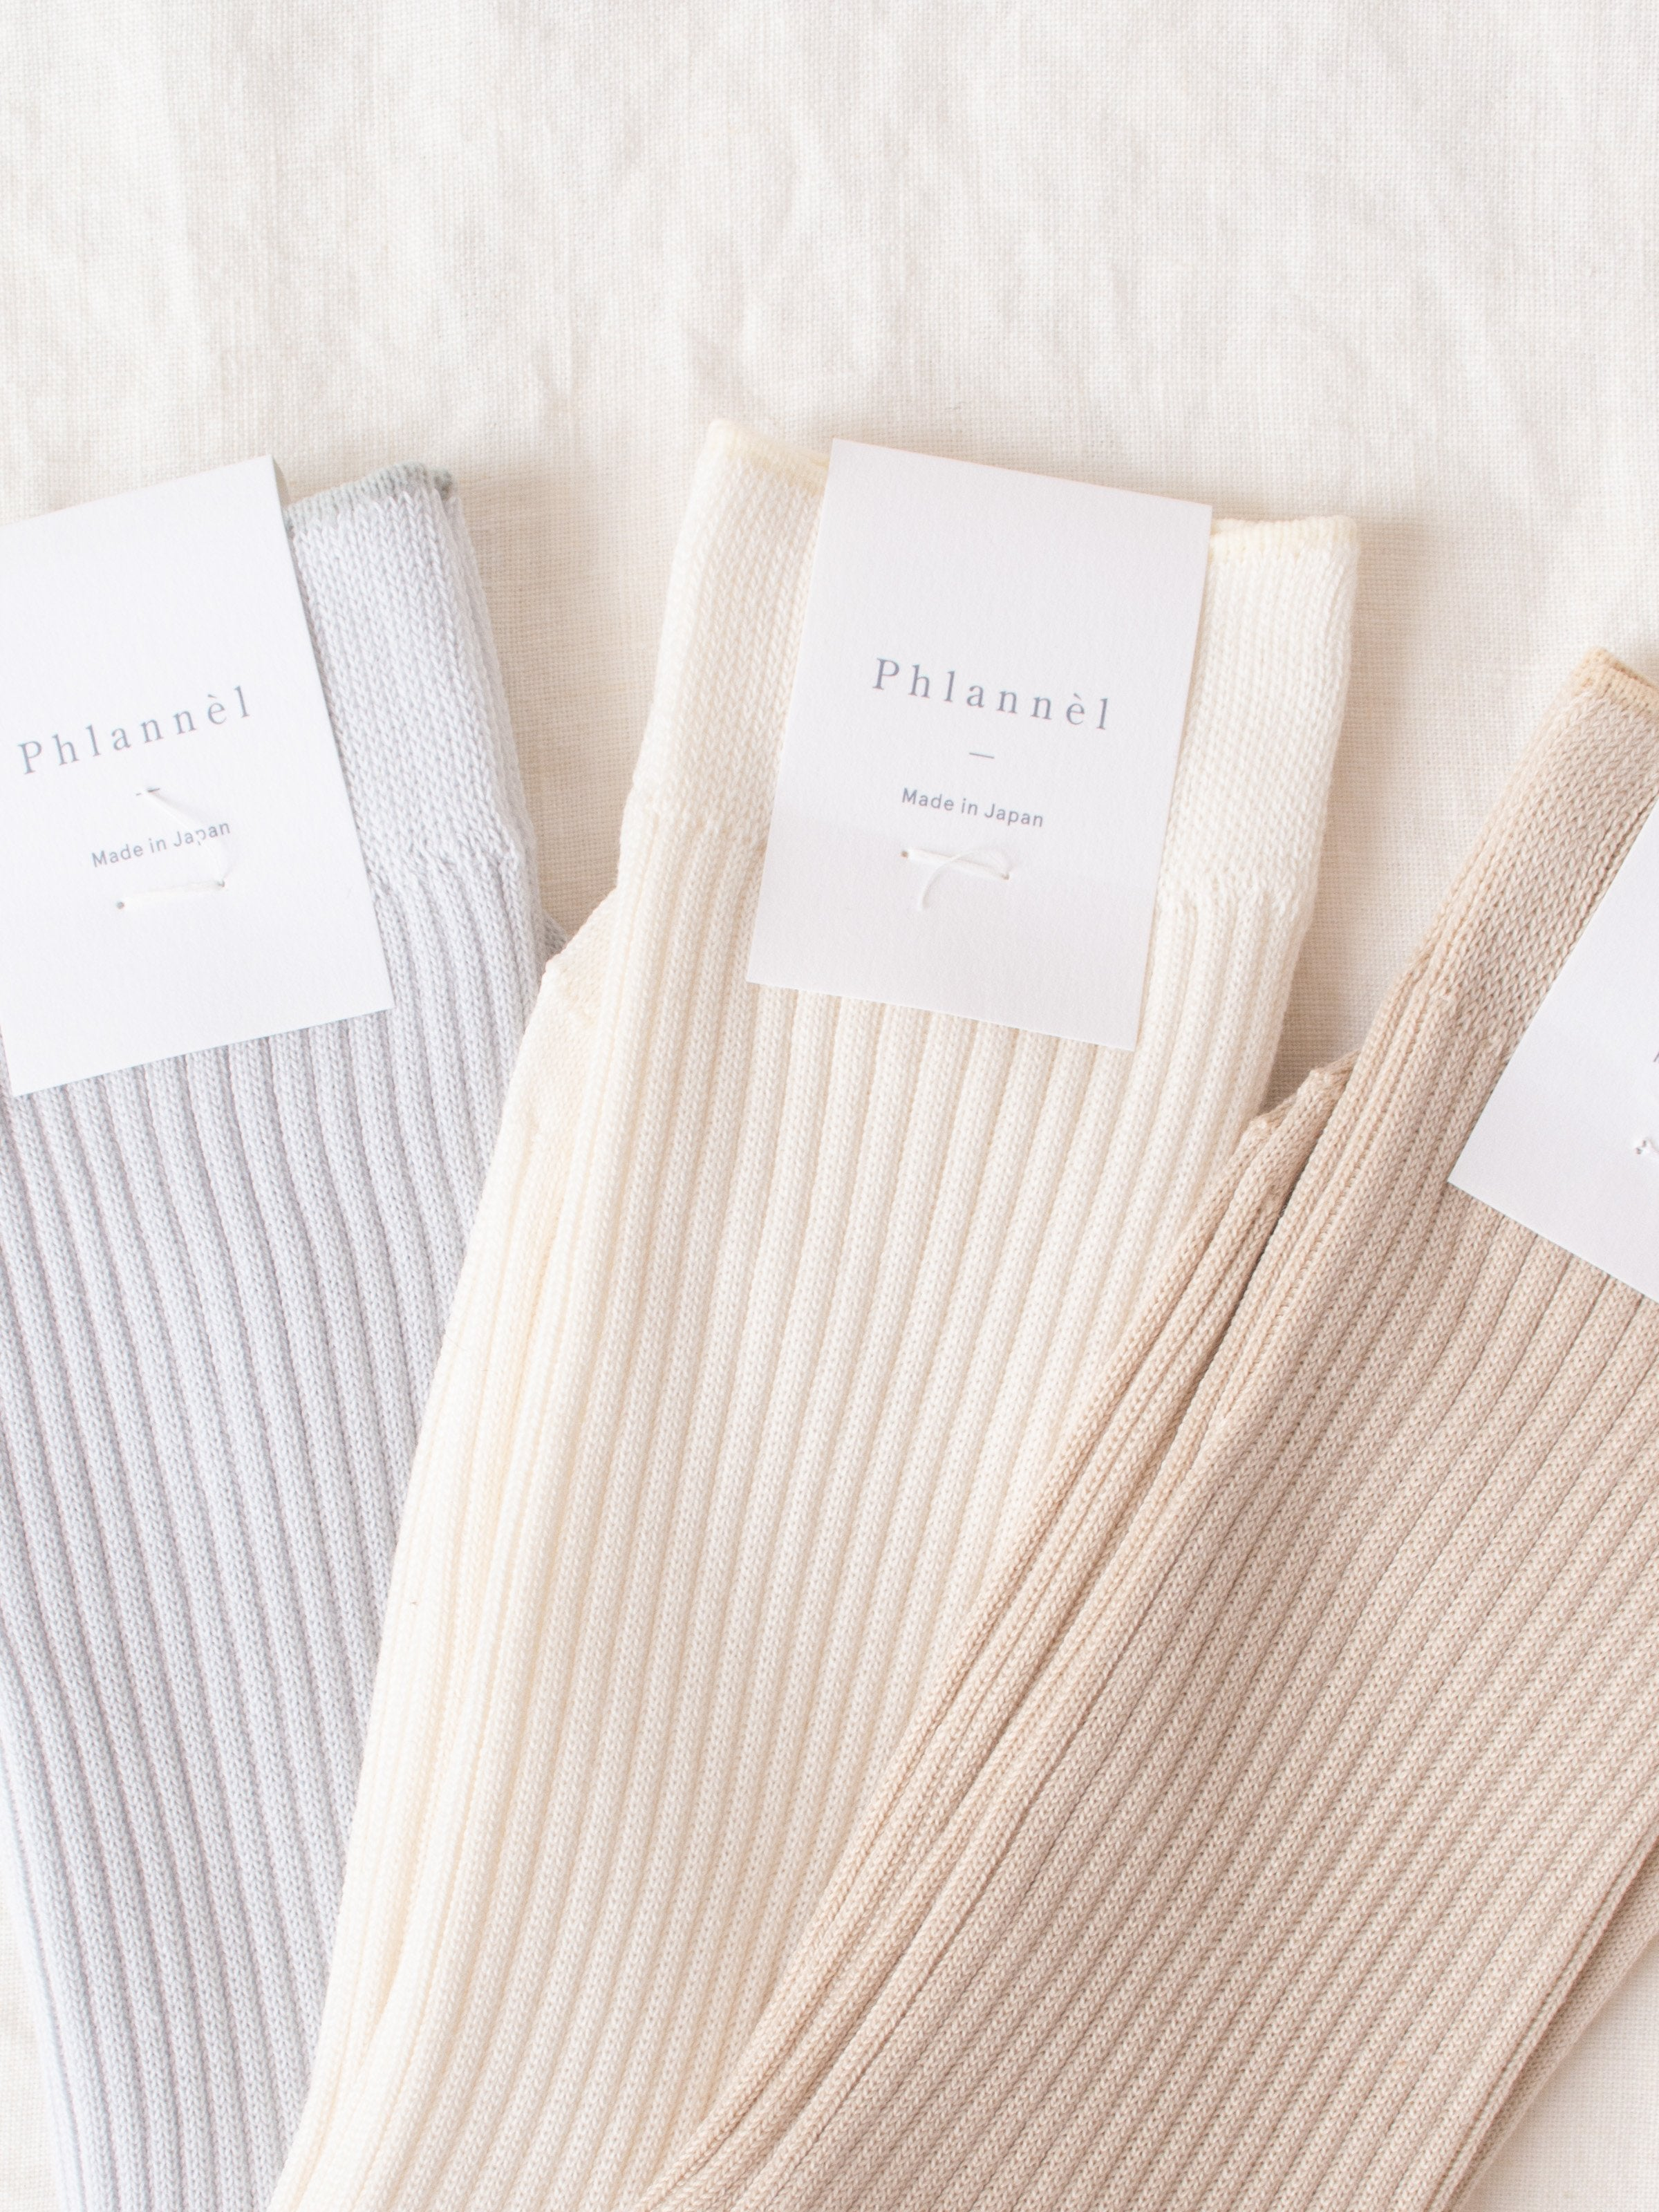 Namu Shop - Phlannel Suvin Cotton Socks (3 Colors)